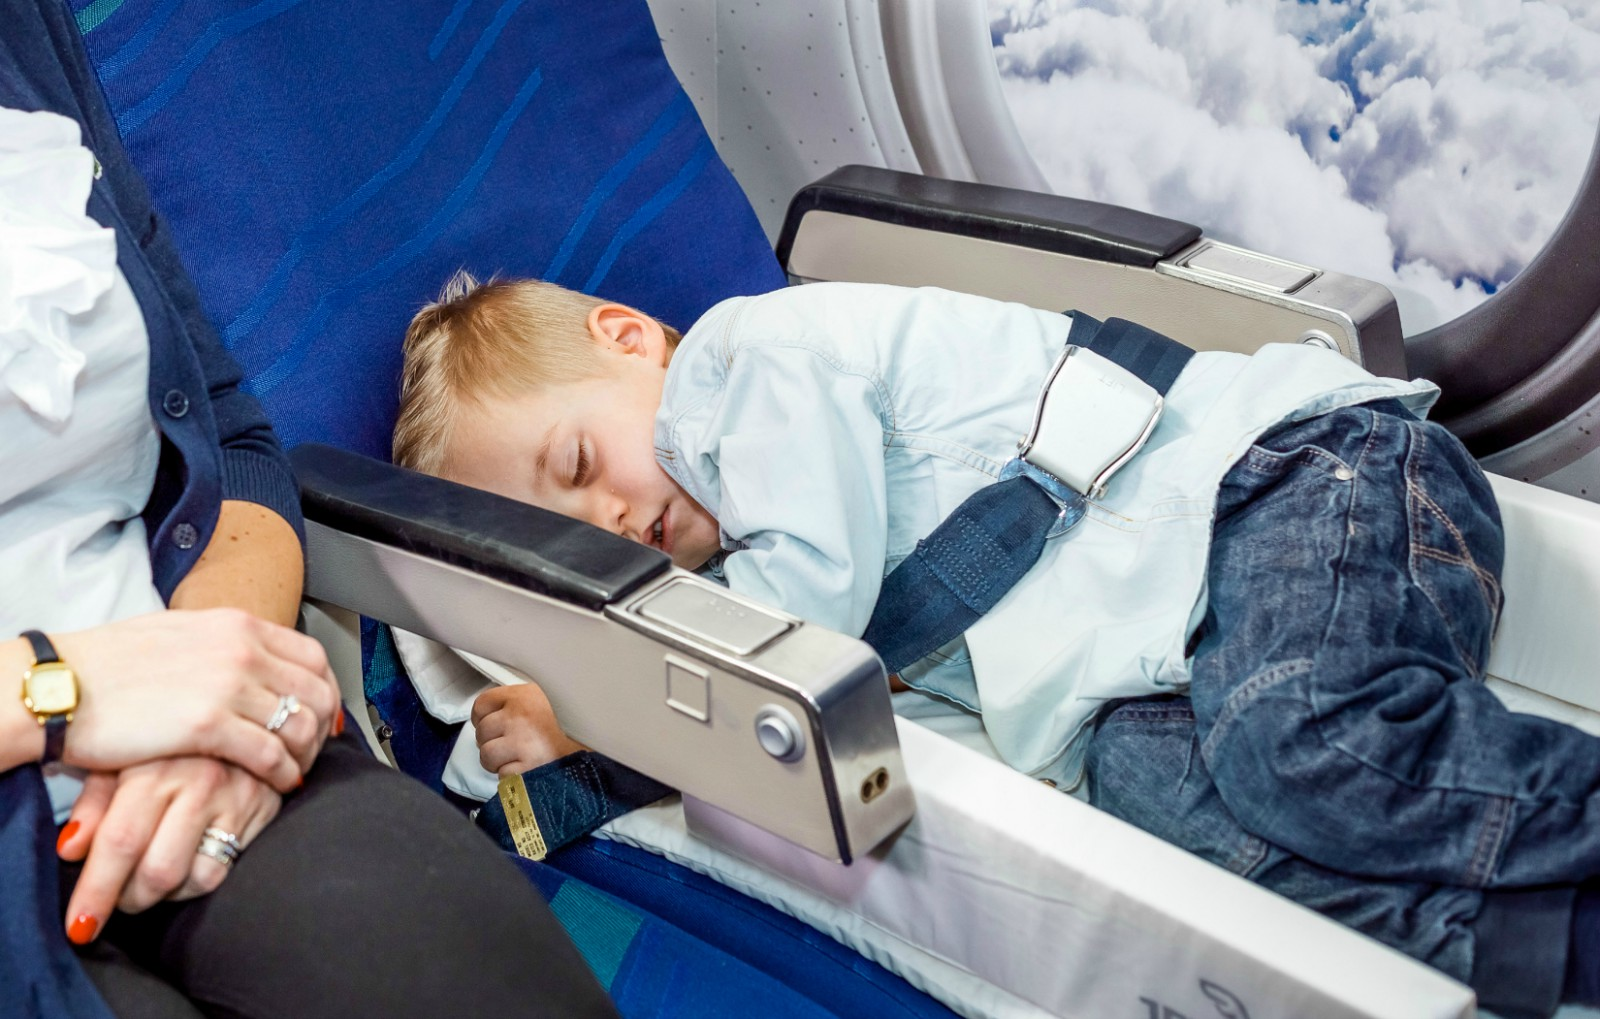 Children's sleepping devices allowed on Virgin Australia